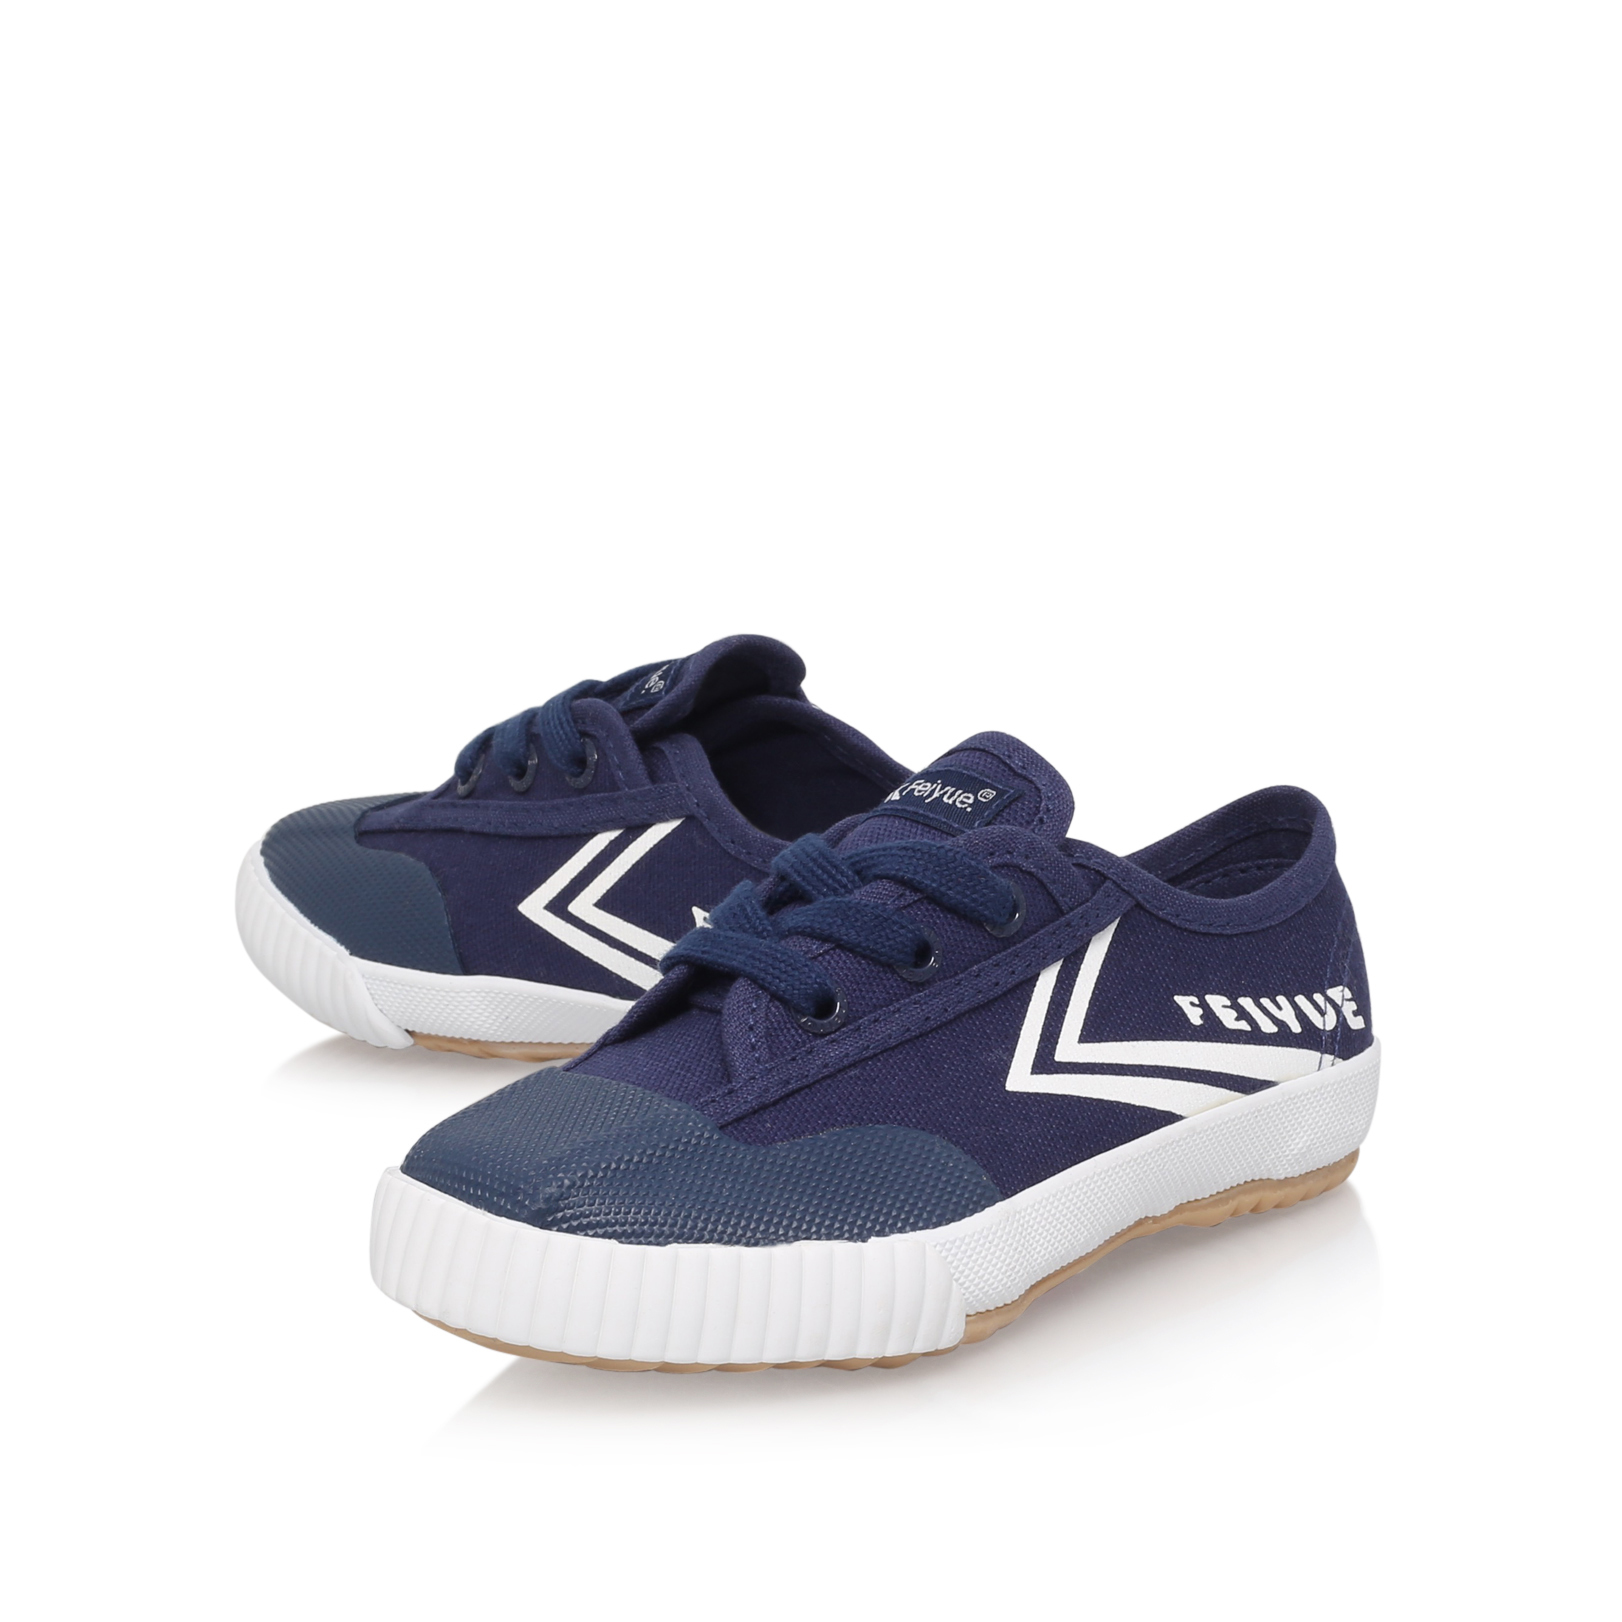 Feiyue Fe Lo Classic Canvas in Navy (Blue) for Men